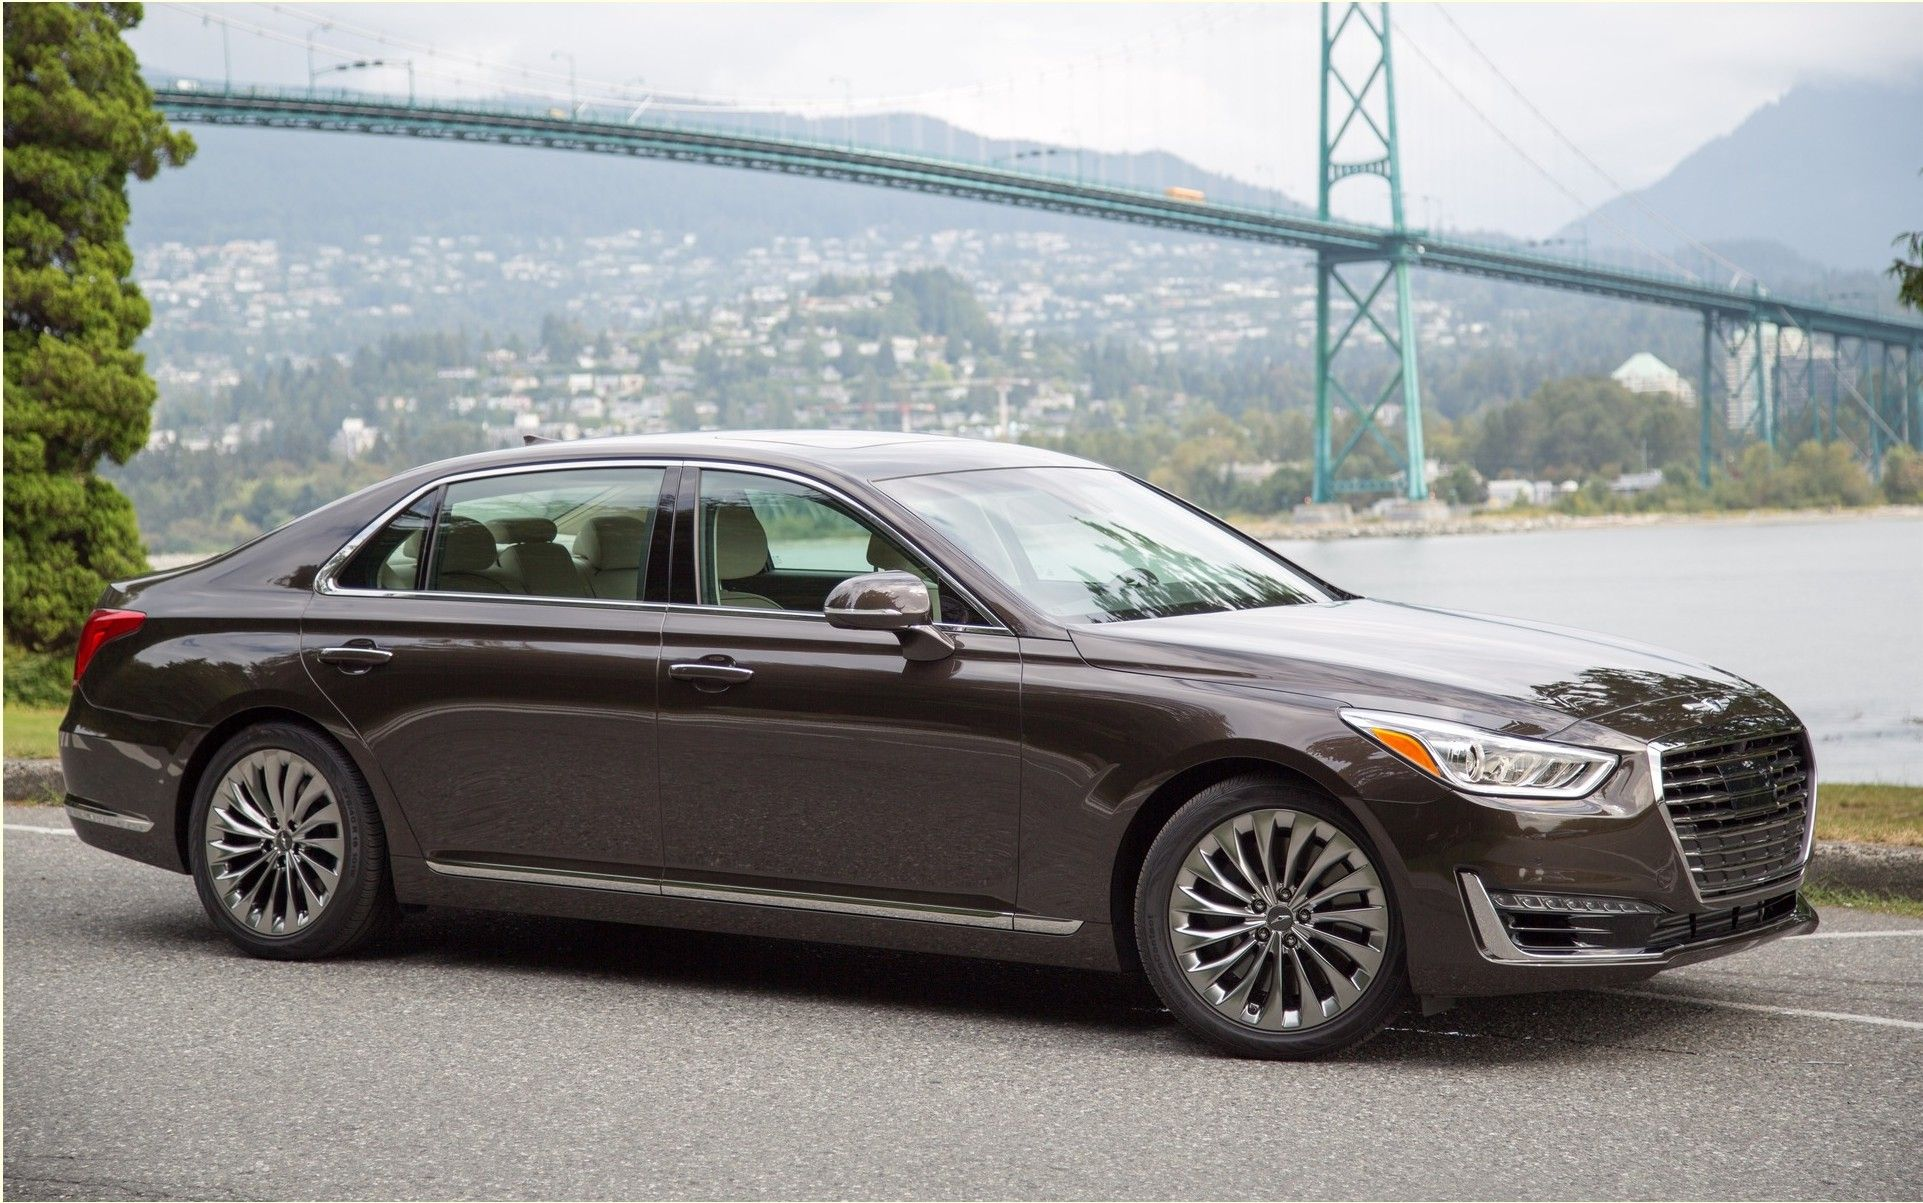 Today Is The Manufacturer Hyundai Officially Launches Its New Genesis Luxury Brand Ends Time Or One Found The Genesis Sed Hyundai Genesis Hyundai Luxury Sedan